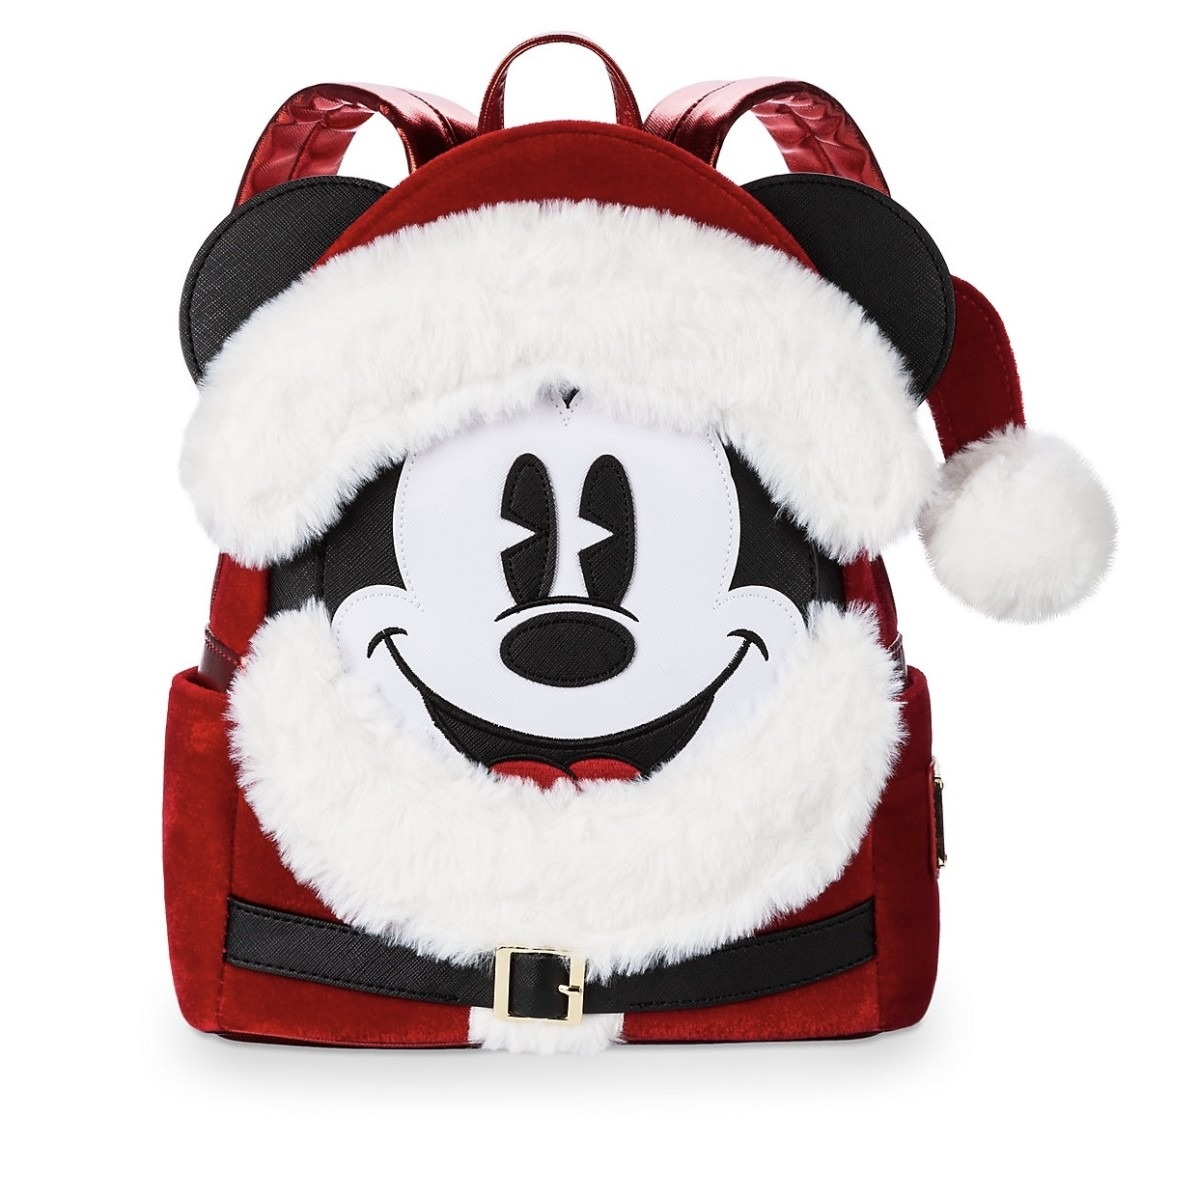 Holiday Merchandise Now Available at ShopDisney! #DisneyHolidays 1